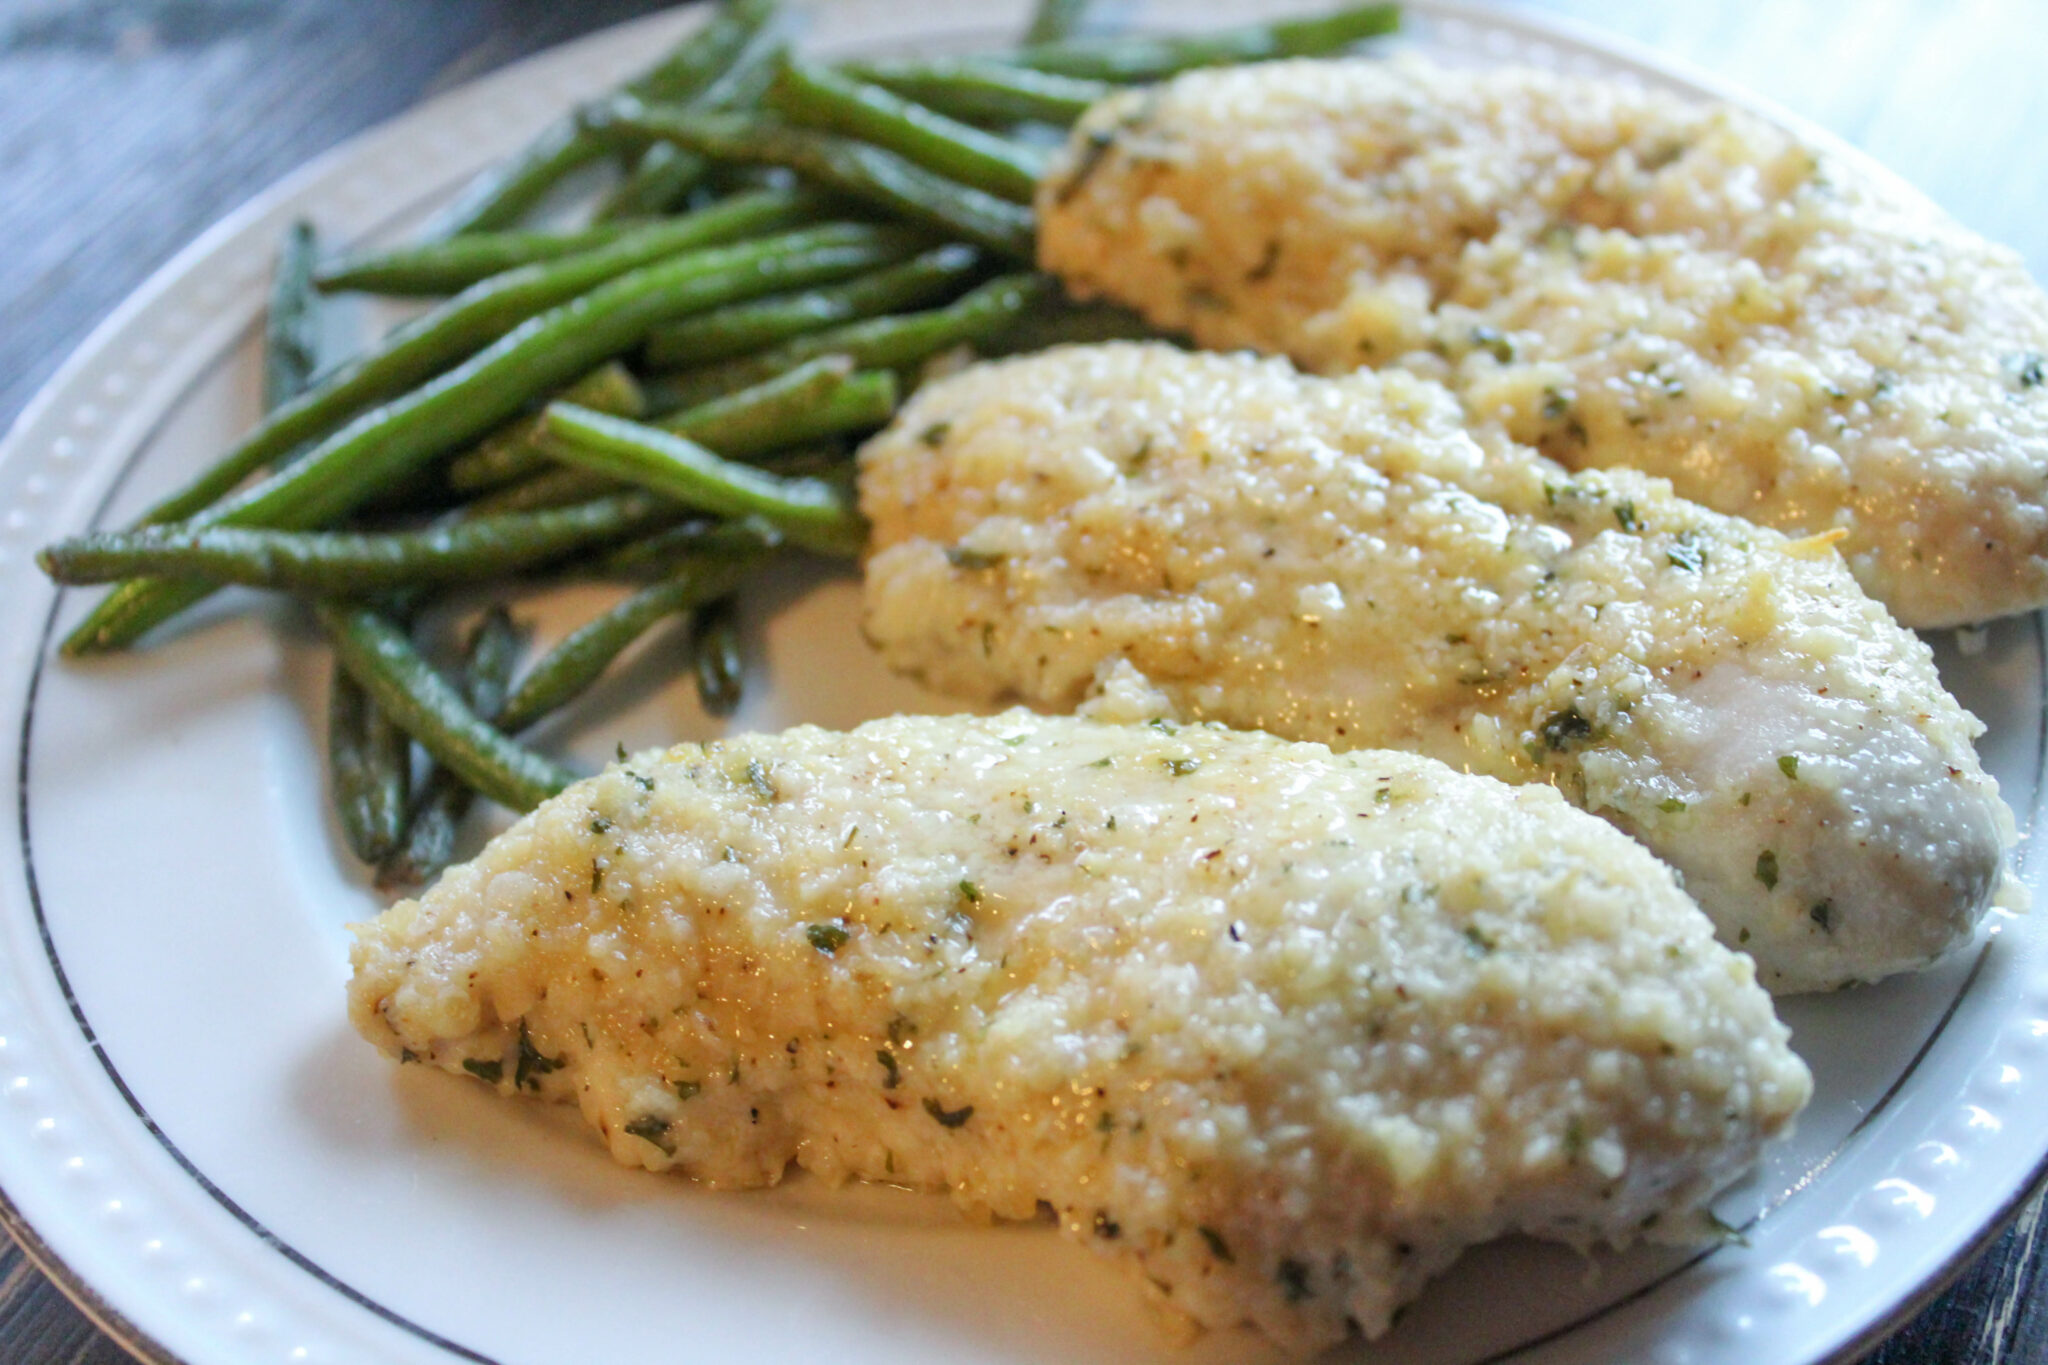 My Parmesan Ranch Chicken Tenders are a family-friendly dinner that's sure to be a new favorite! This juicy, low-carb meal is easy to make.